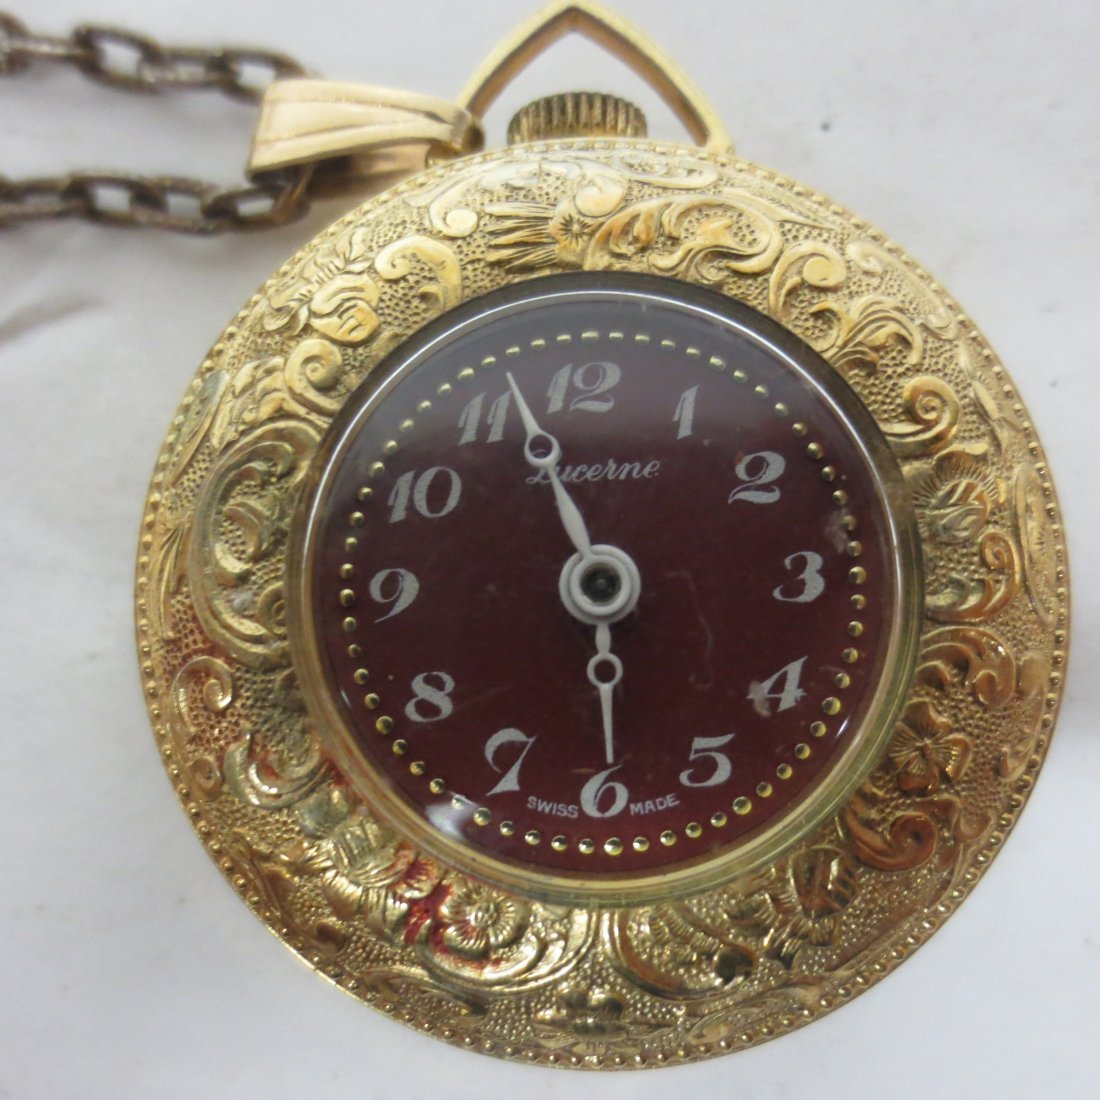 Pocket Watches, Lucerne, Genovit De Luxe, Navarre, - 7